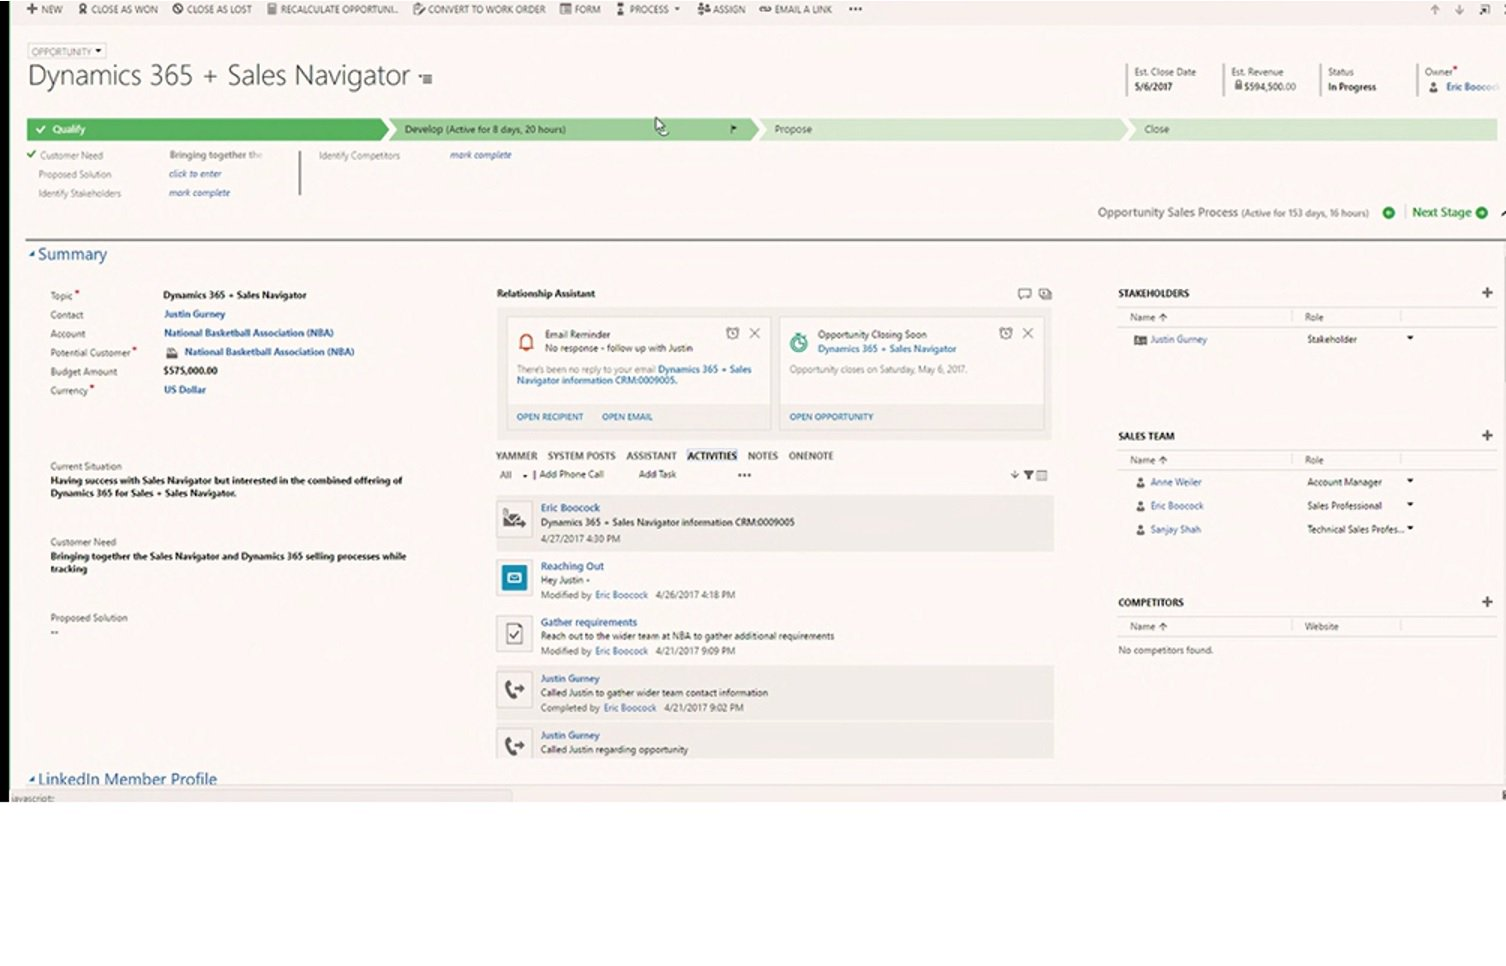 No need to re-save or copy data -> dynamic insights bring the data from YOUR #Office365, #Dynamics365 and #LinkedIn  #msbusinessfwd https://t.co/5BXVzjvswB